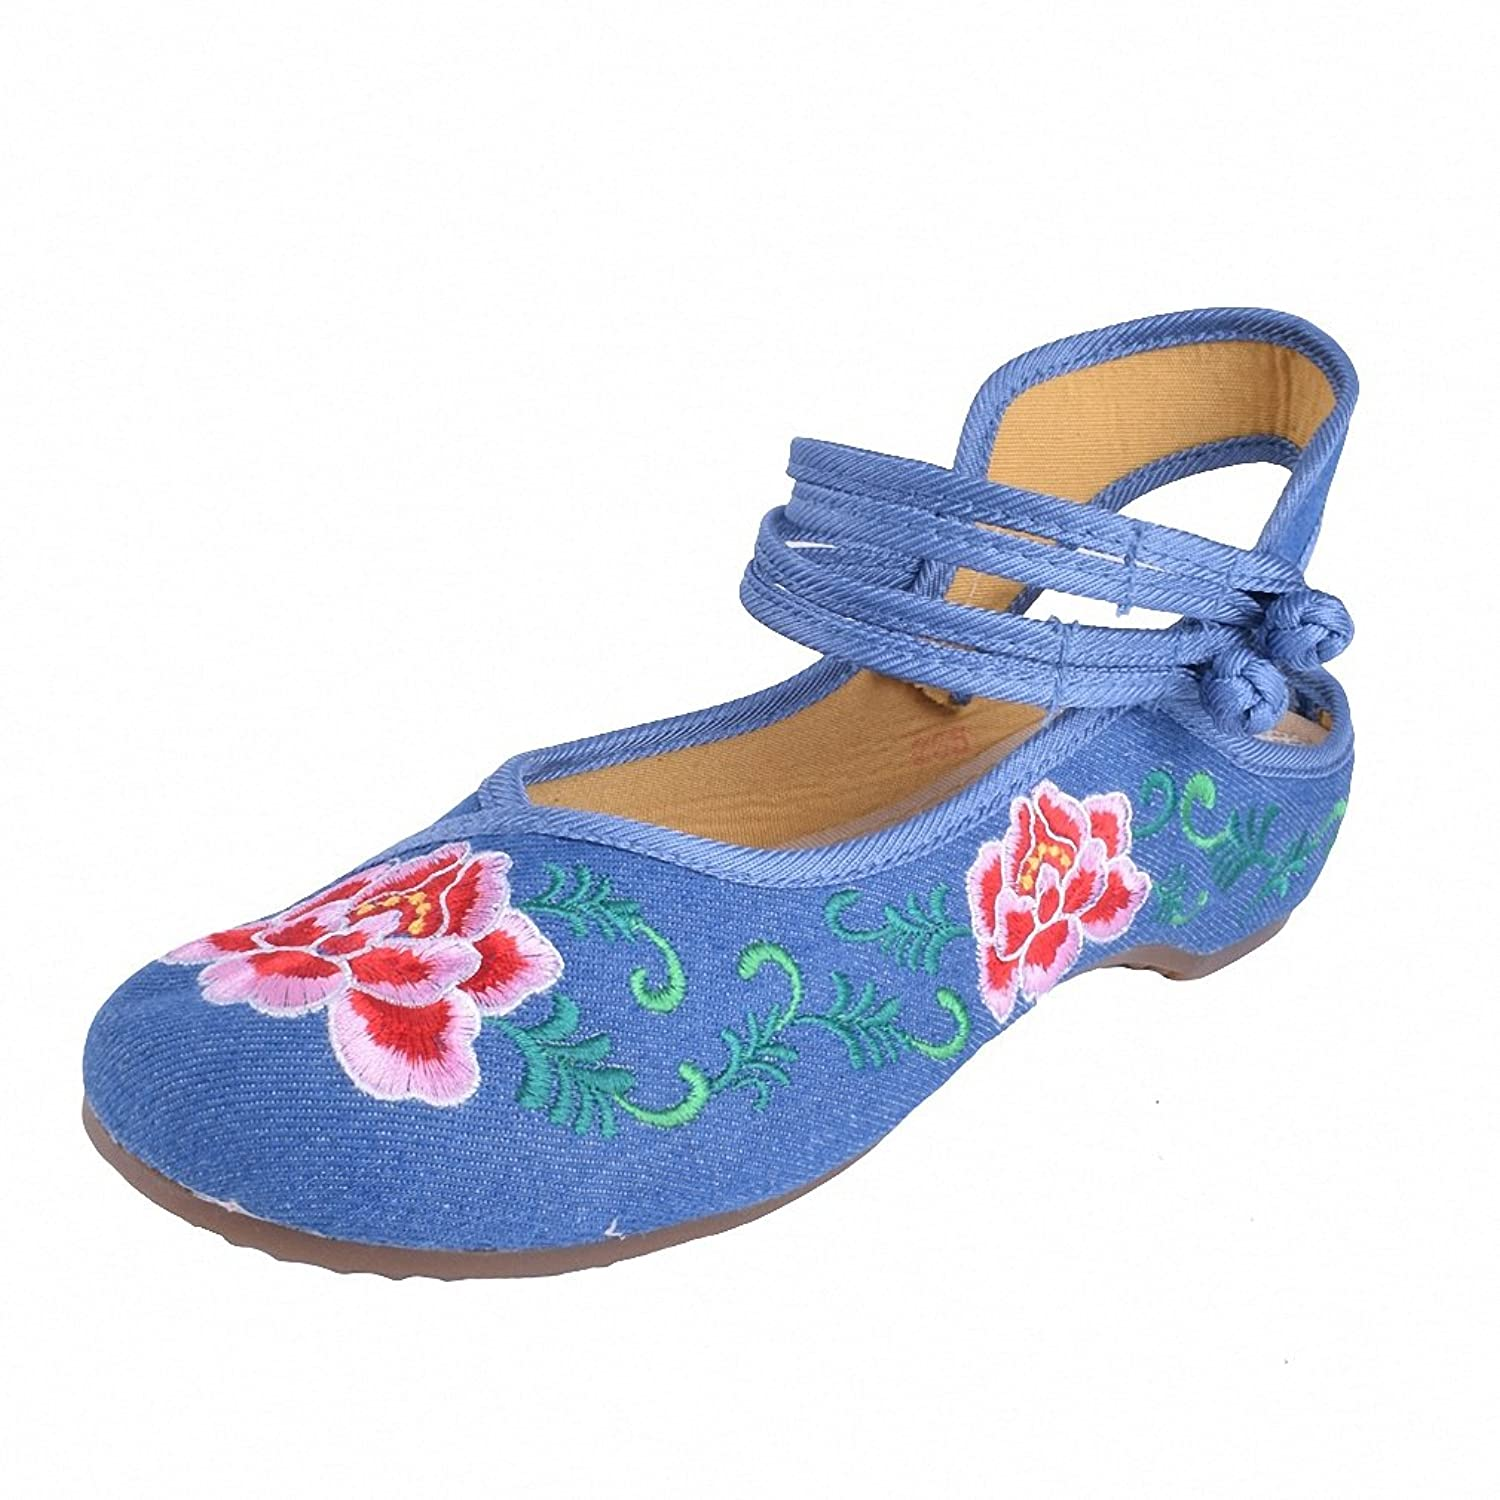 New Arrive Chinese Embroidery Flats Old Beijing embroidered canvas floral shoes Traditional dance single shoes size 34-41 Blue 7